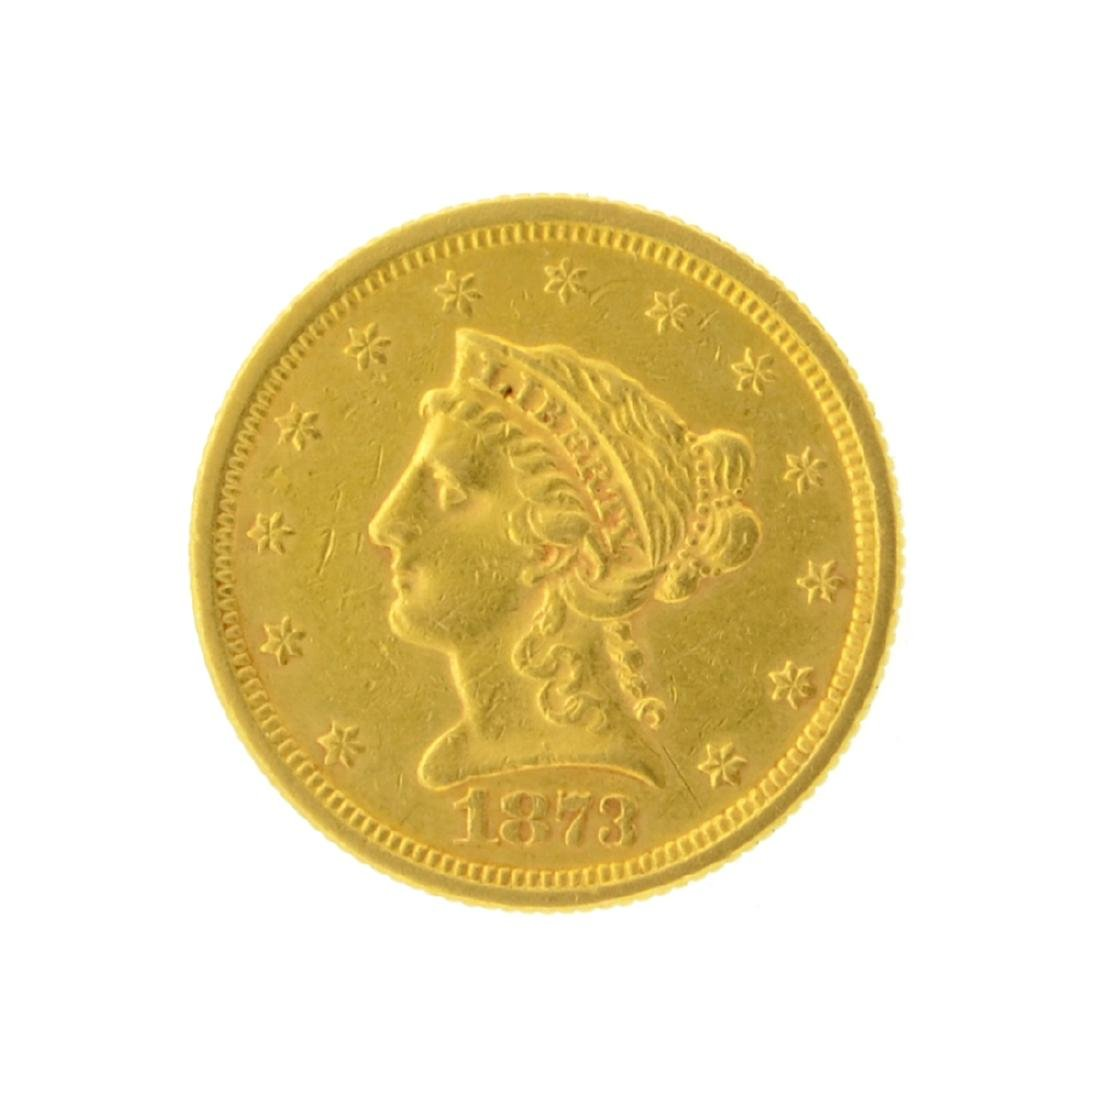 1873 $2.50 Liberty Head Gold Coin